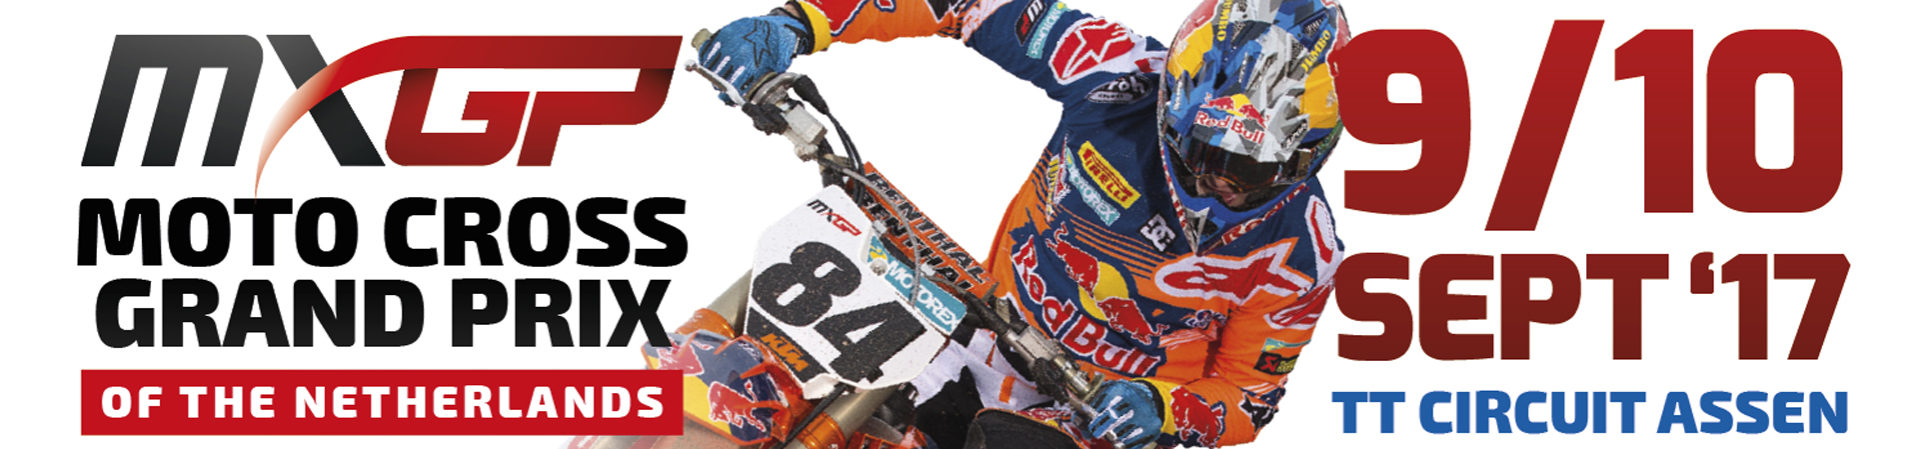 Moto Cross Grand Prix of the Netherlands